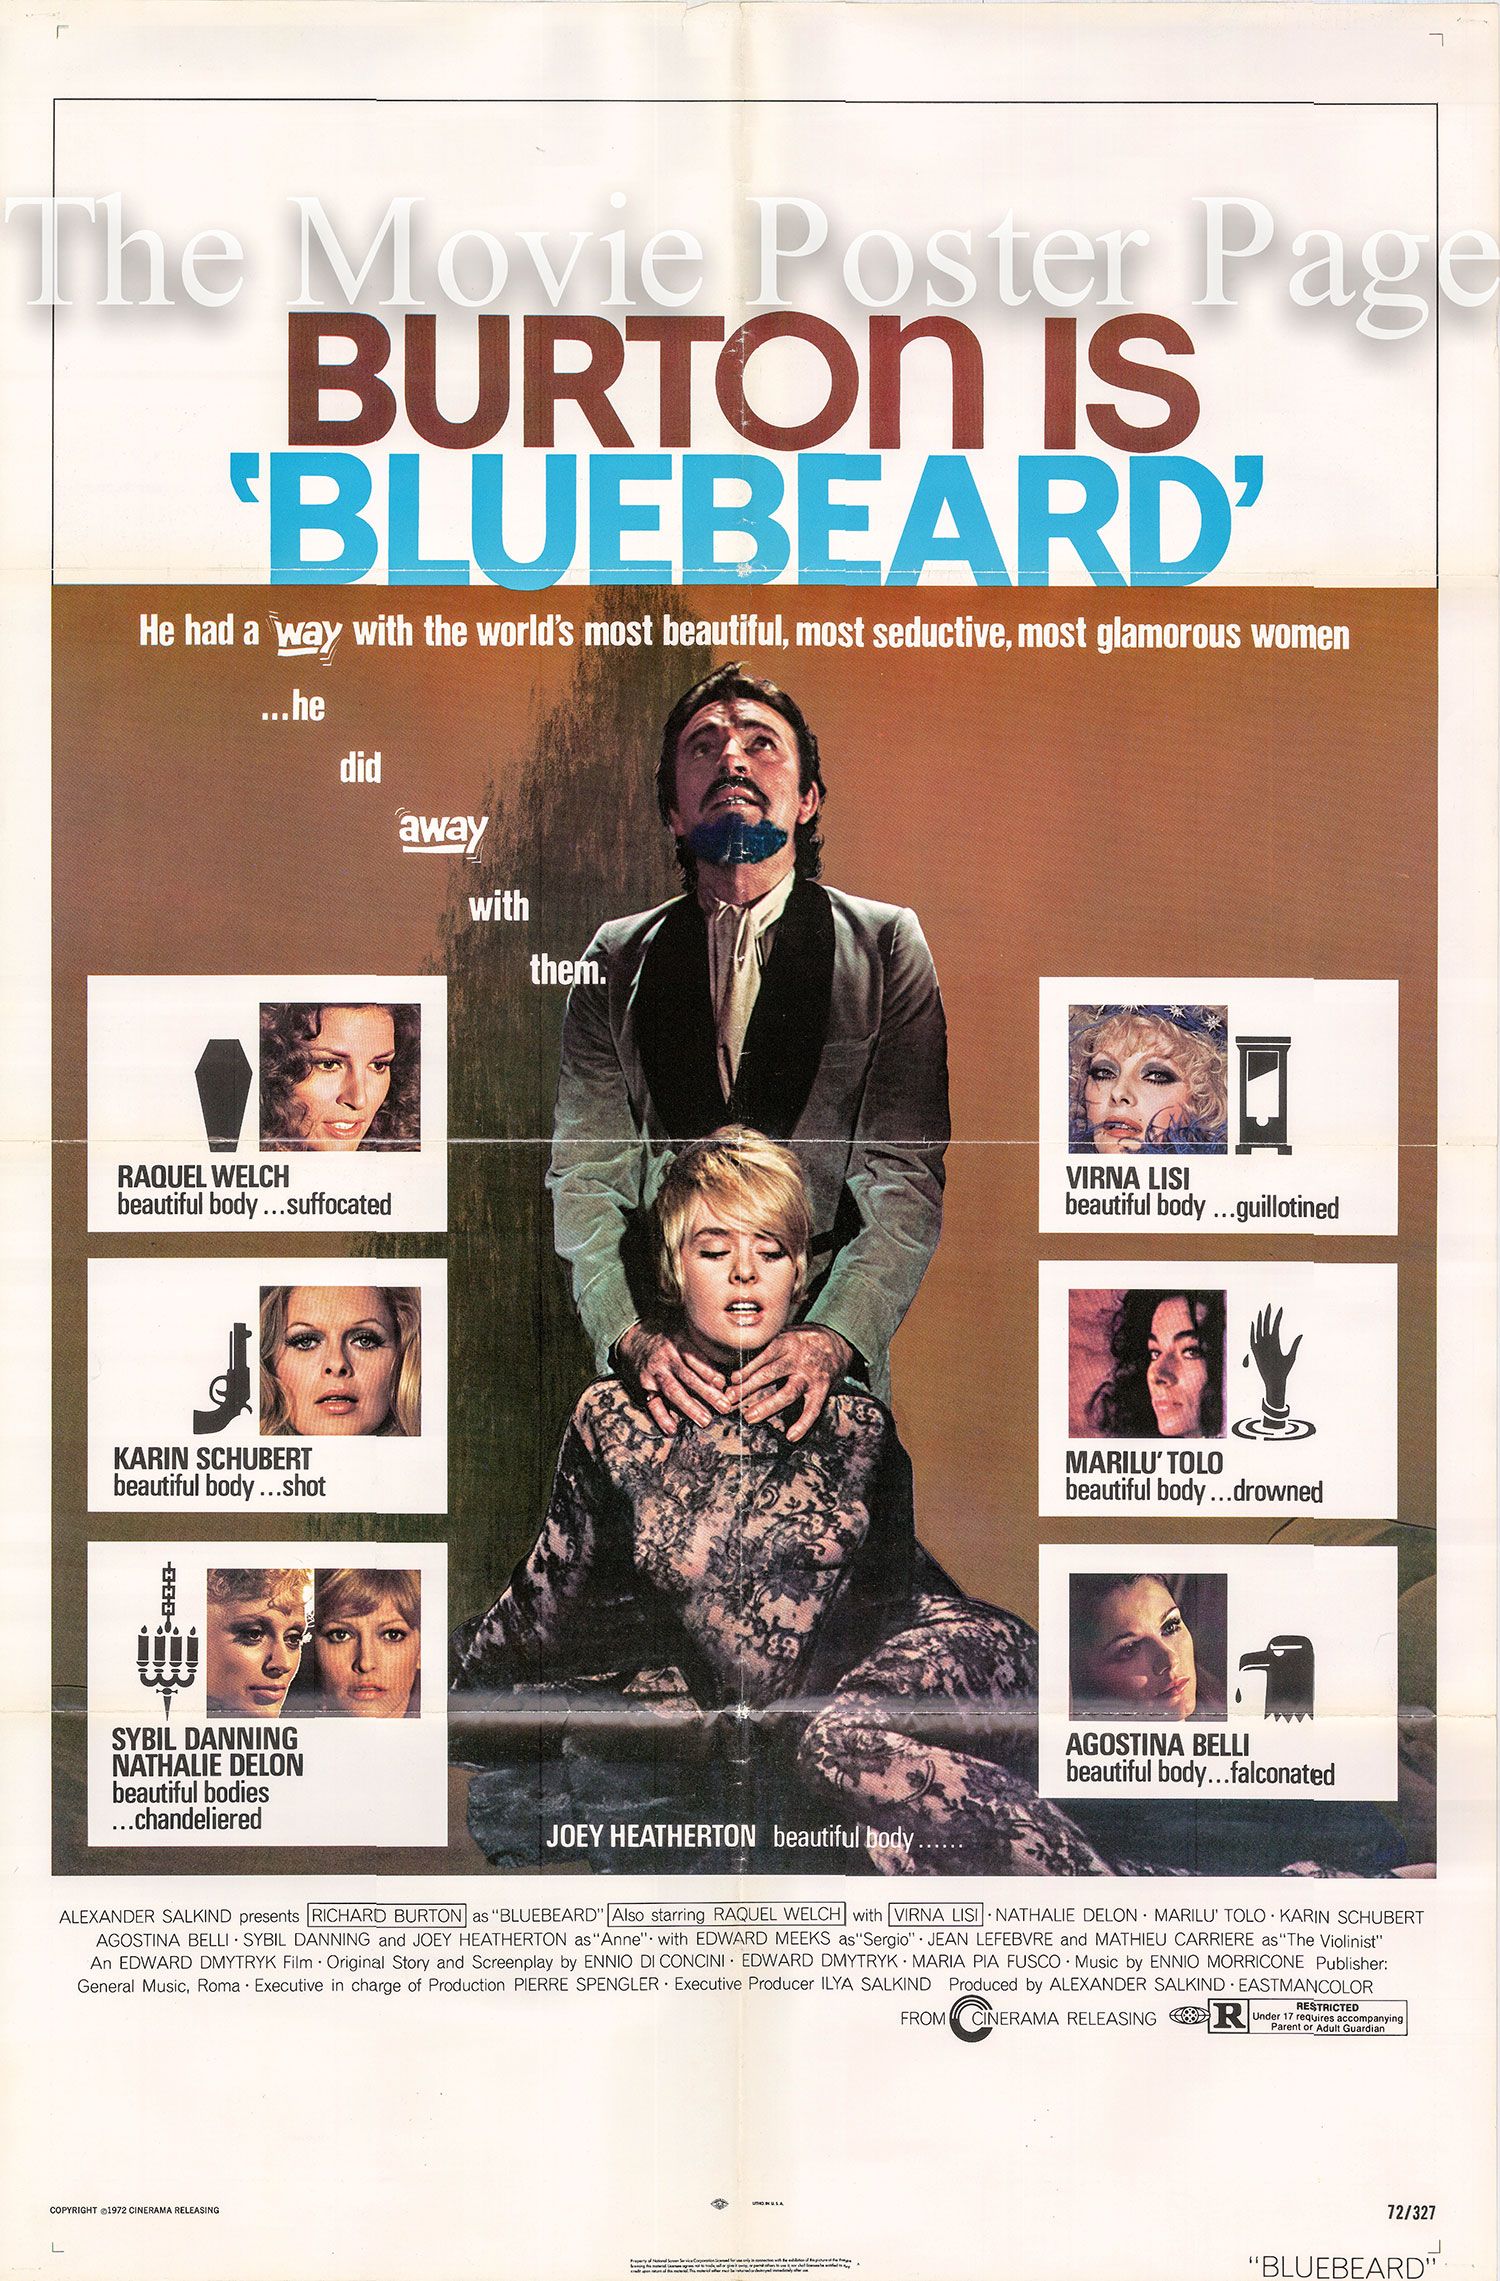 Pictured is a US one-sheet promotional poster for the 1972 Edward Dmytryk film Bluebeard starring Richard Burton.